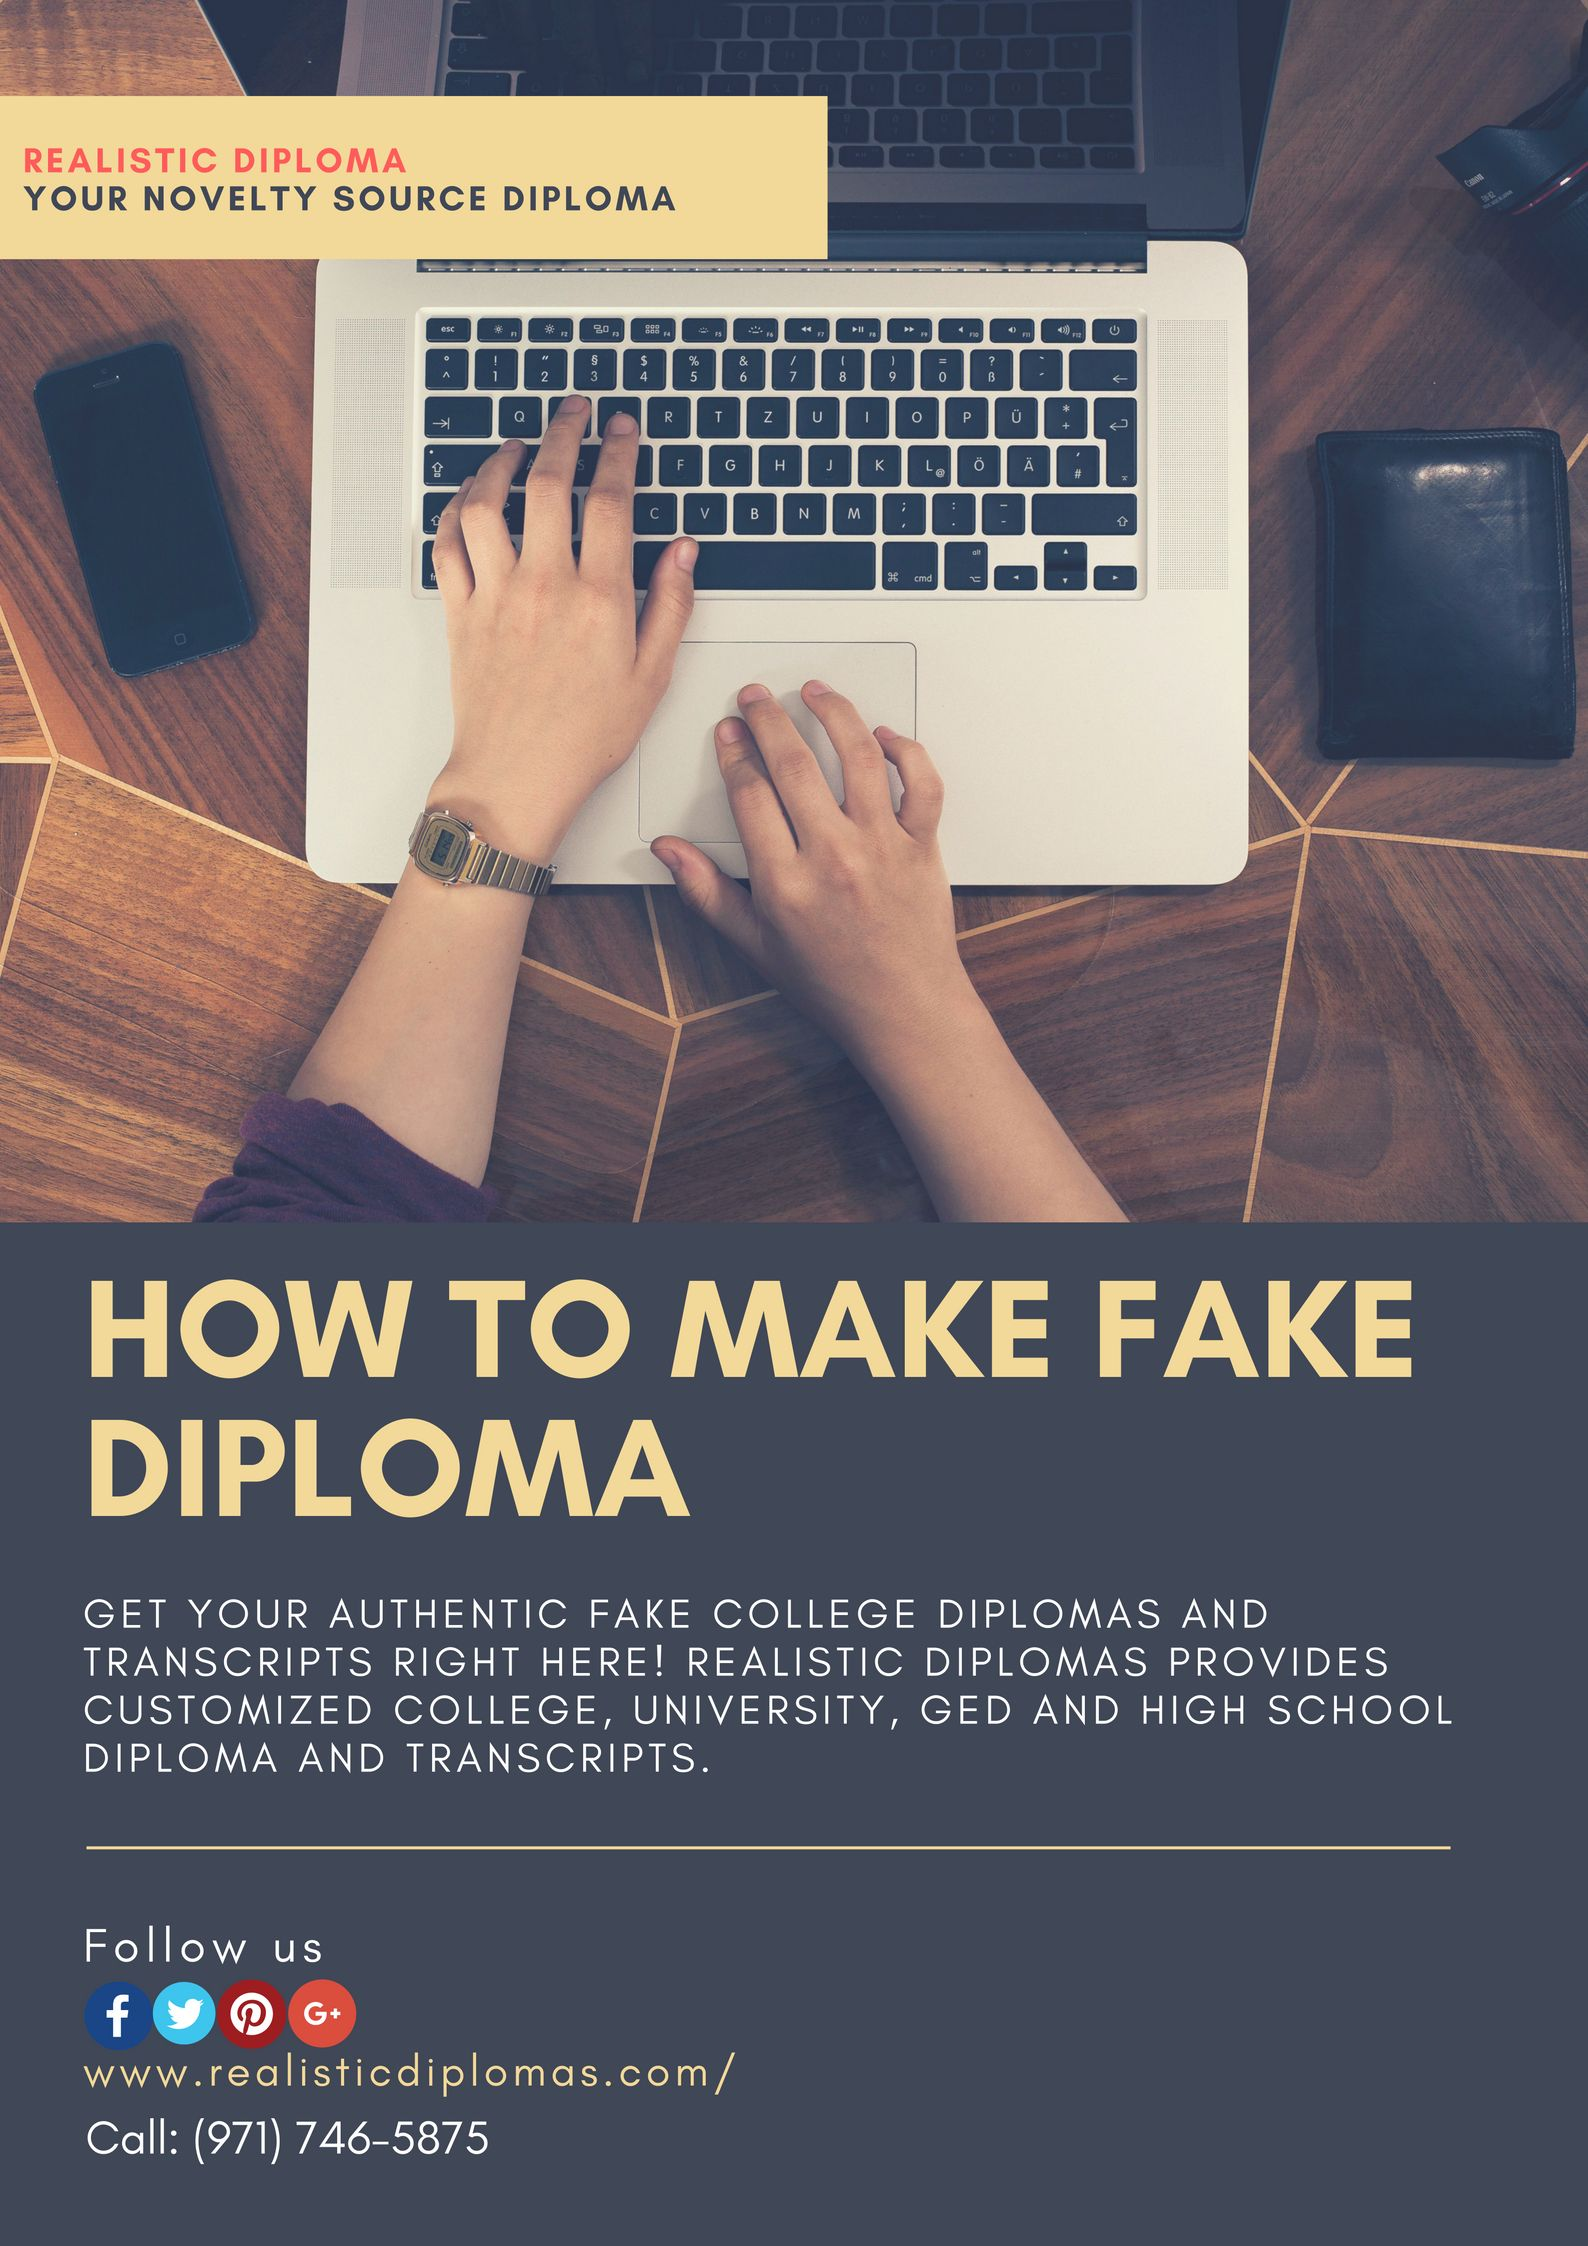 Can you make a fake diploma